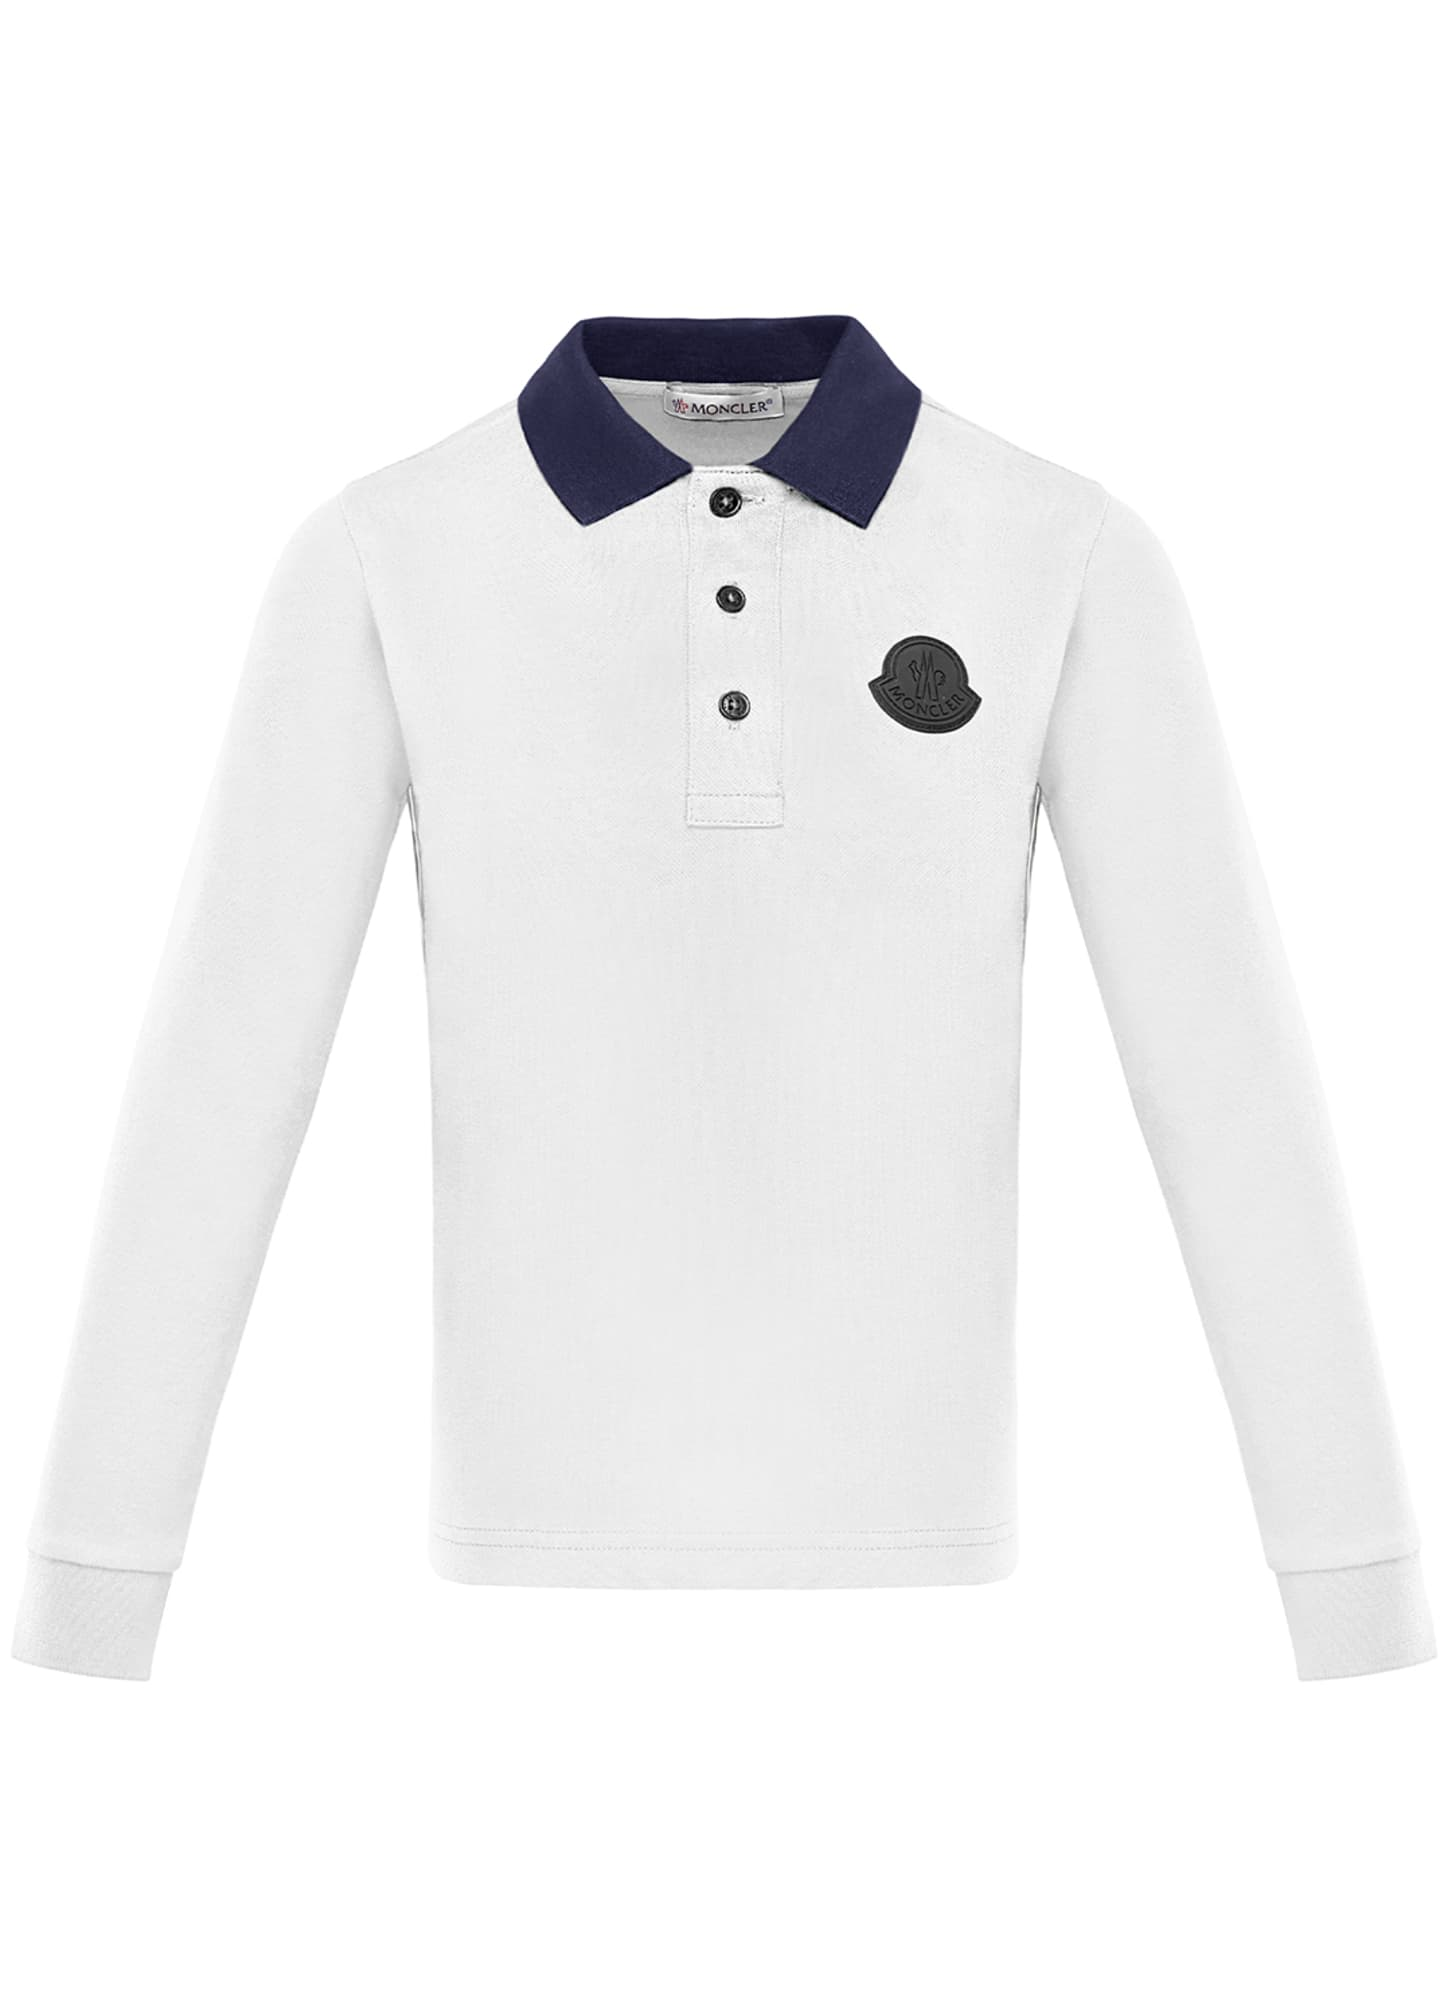 Moncler Long-Sleeve Polo Shirt w/ Side Taping, Size